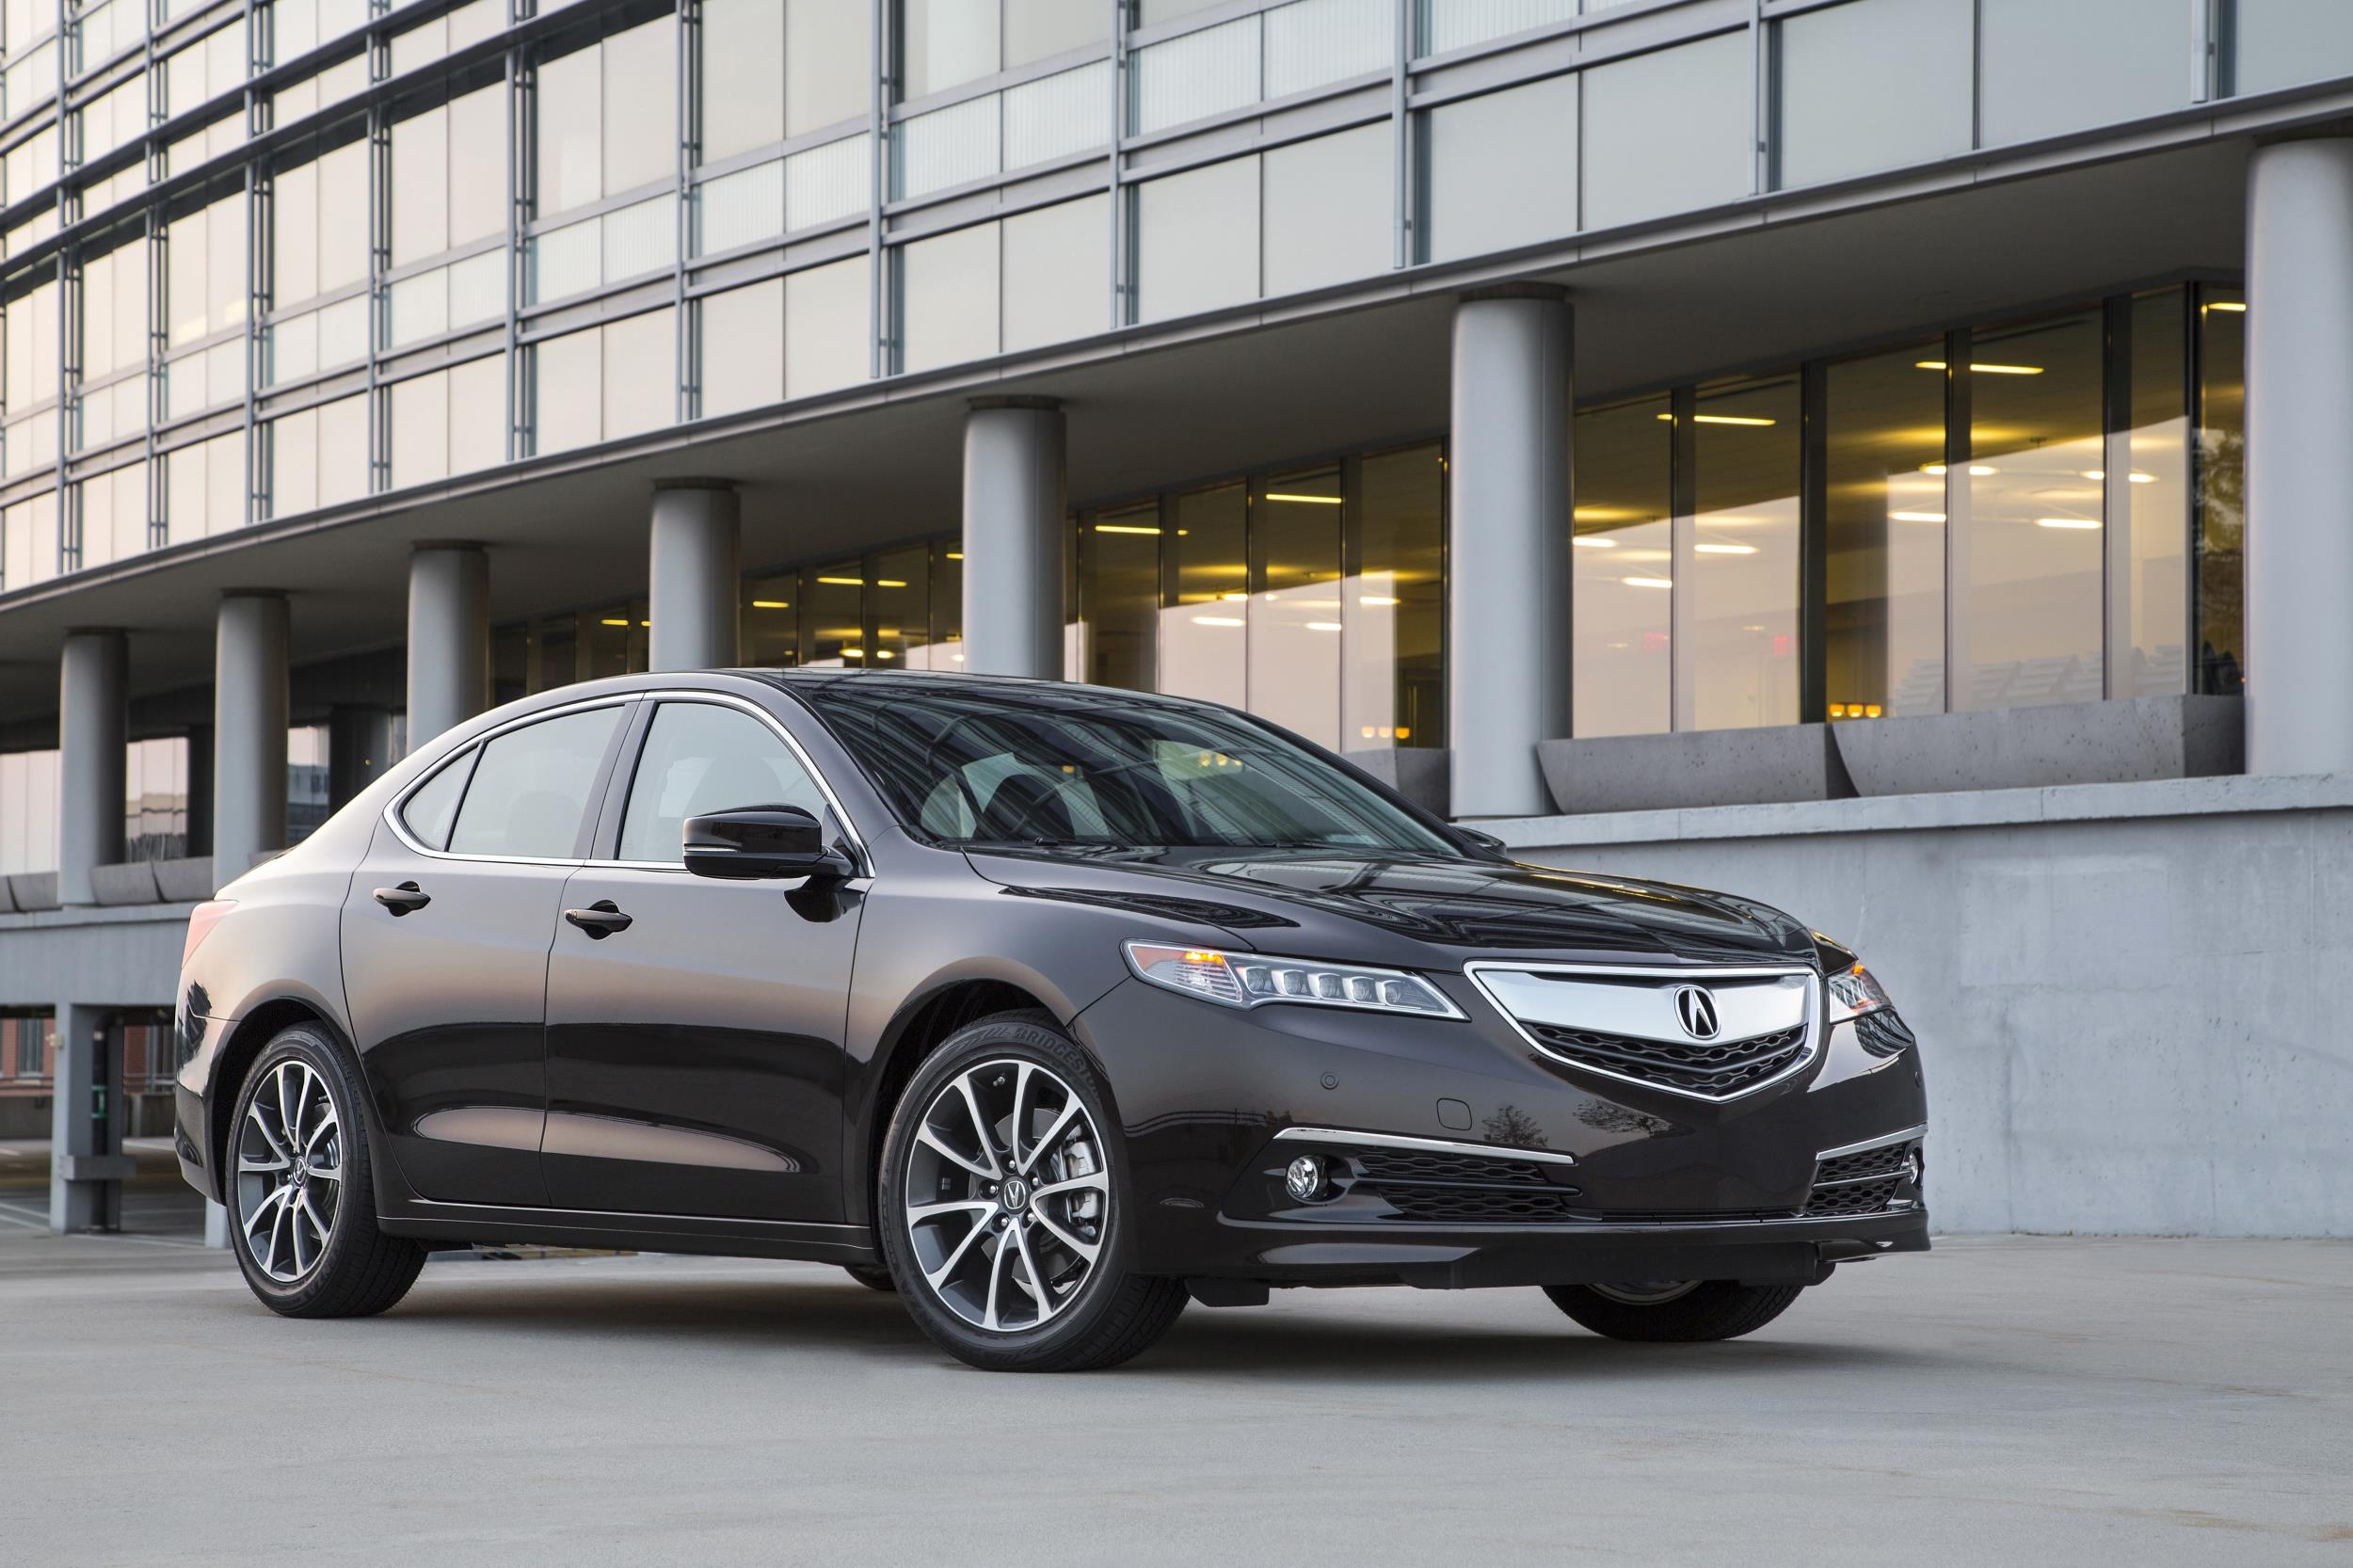 Sans The 920 Destination Charge 2017 Acura Tlx Starts At 31 900 That S About 200 Or Thereabout More Expensive Than Yesteryear Model